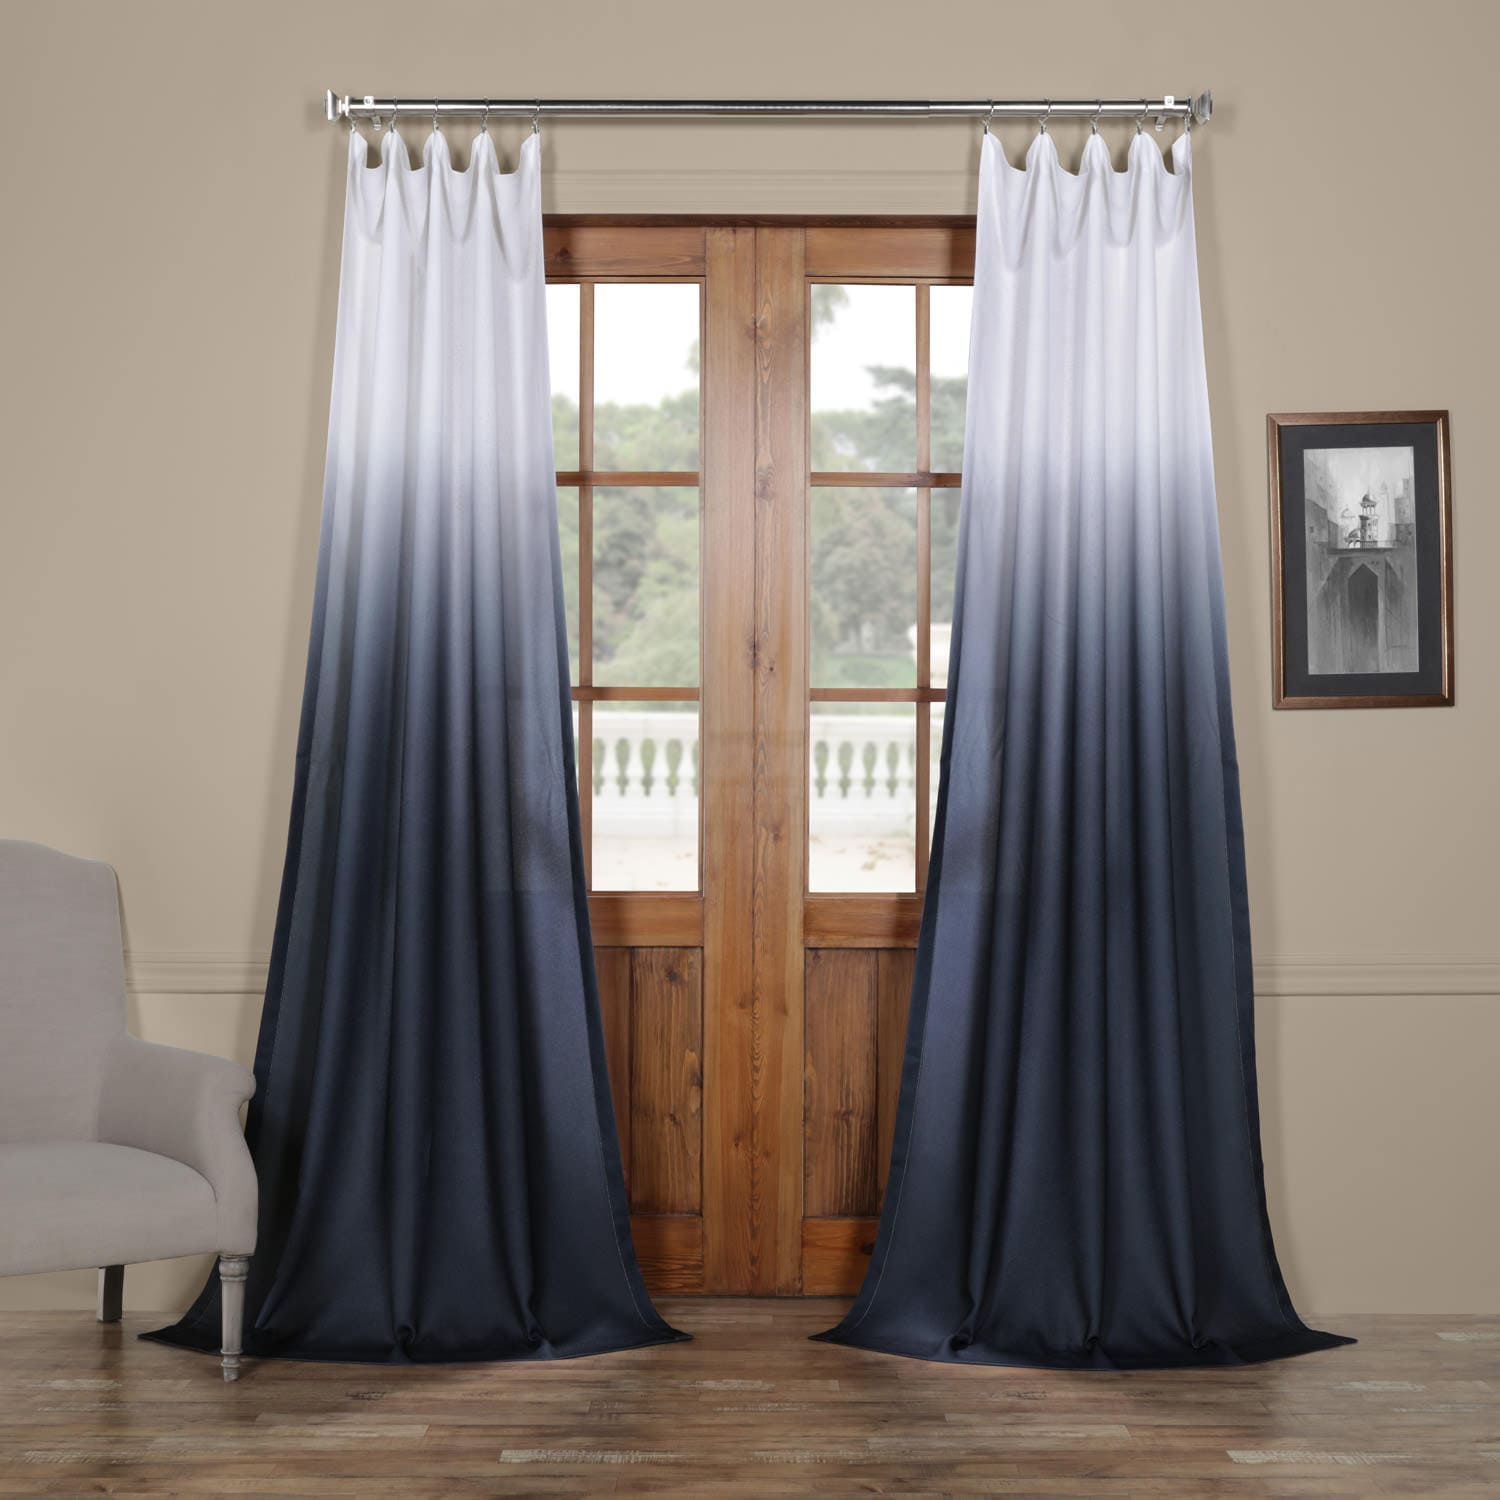 Ombre Blue Faux Linen Sheer Curtain – Secret Garden Leaf Regarding Ombre Stripe Yarn Dyed Cotton Window Curtain Panel Pairs (View 15 of 20)